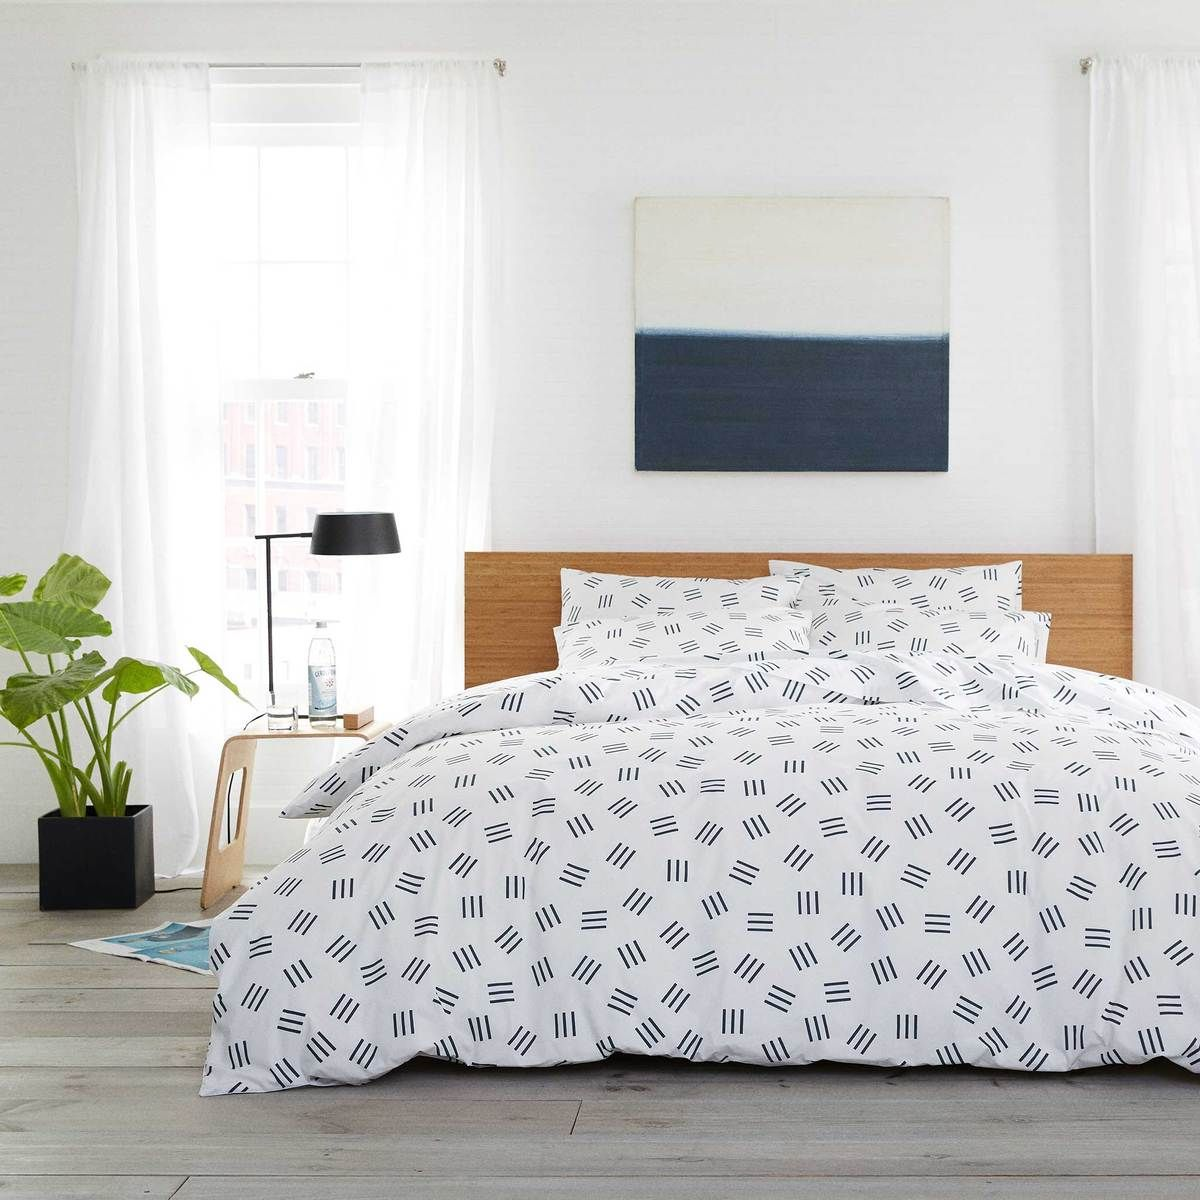 Brooklinen's Limited-Edition Sheets Are Almost Sold Out, So Get 'Em Before They're Gone